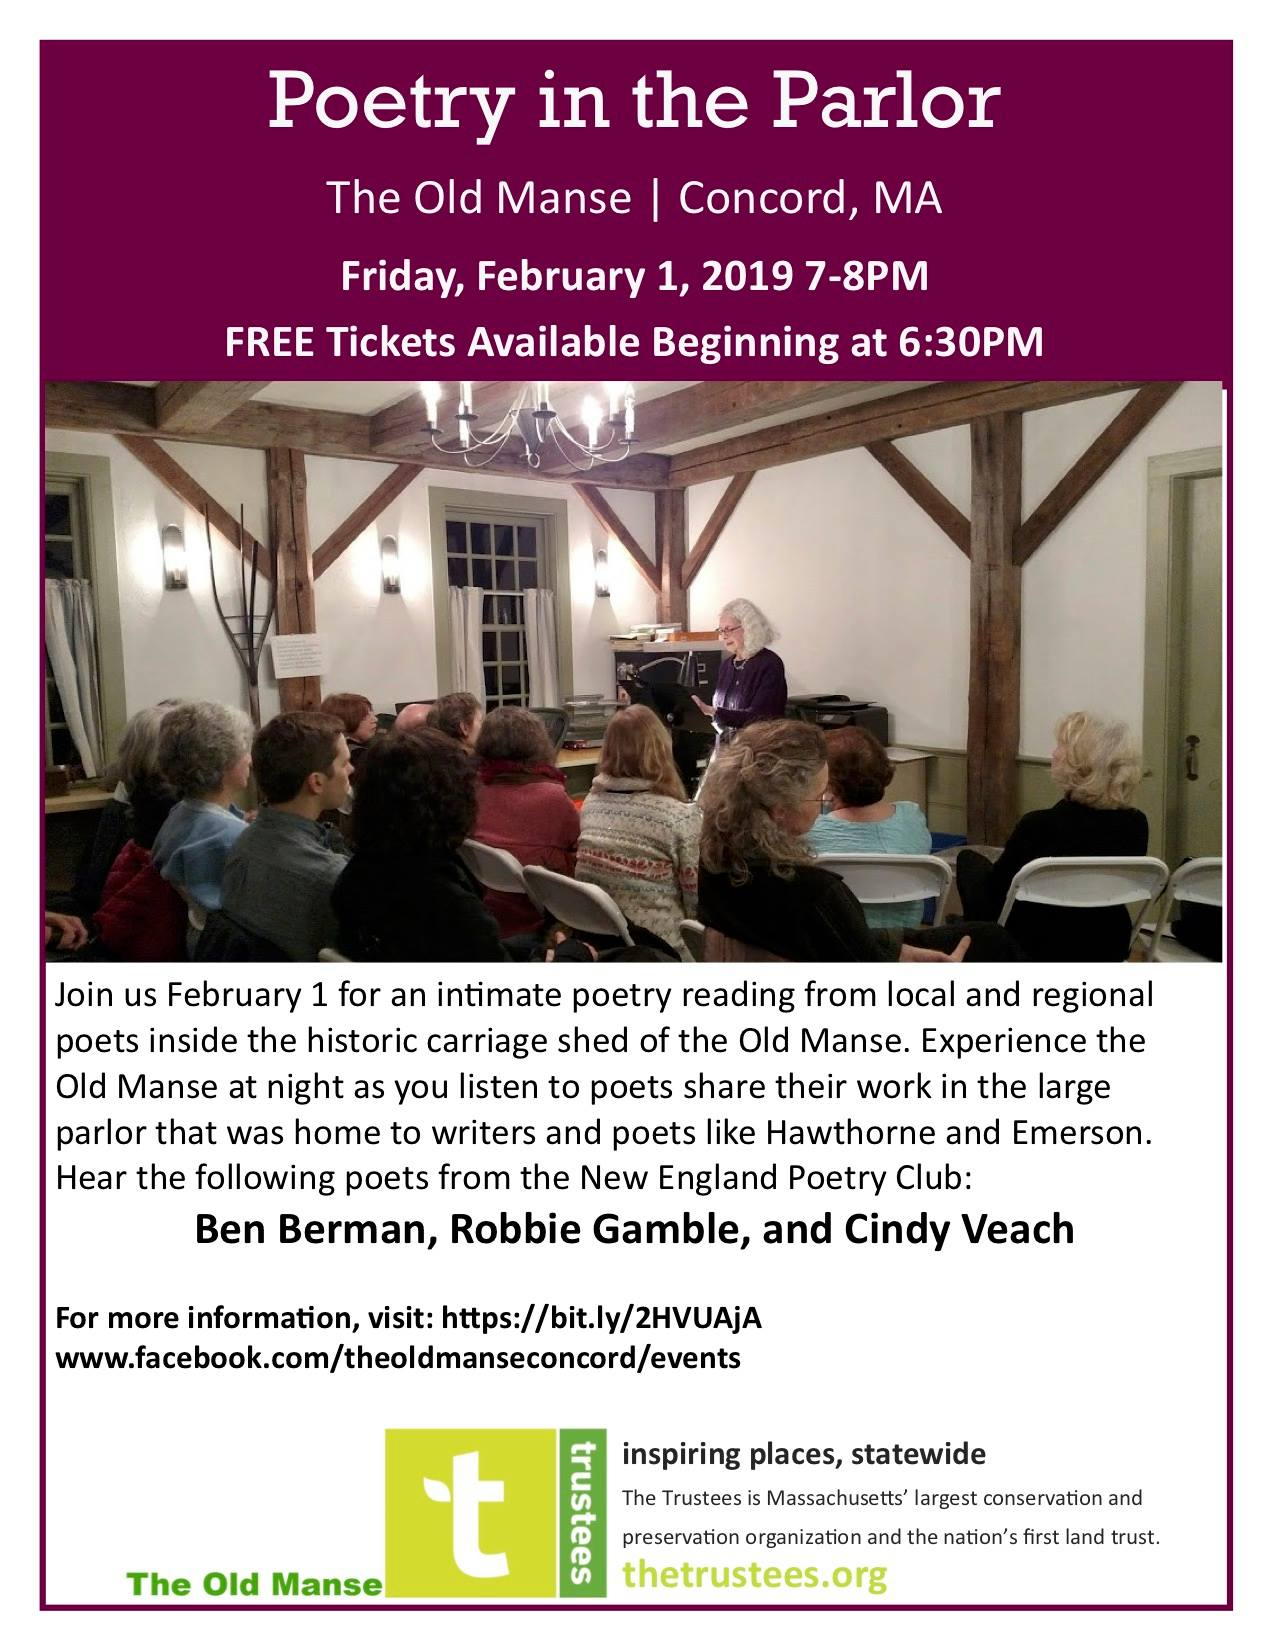 Poetry in the Parlor at The Old Manse in Concord | New